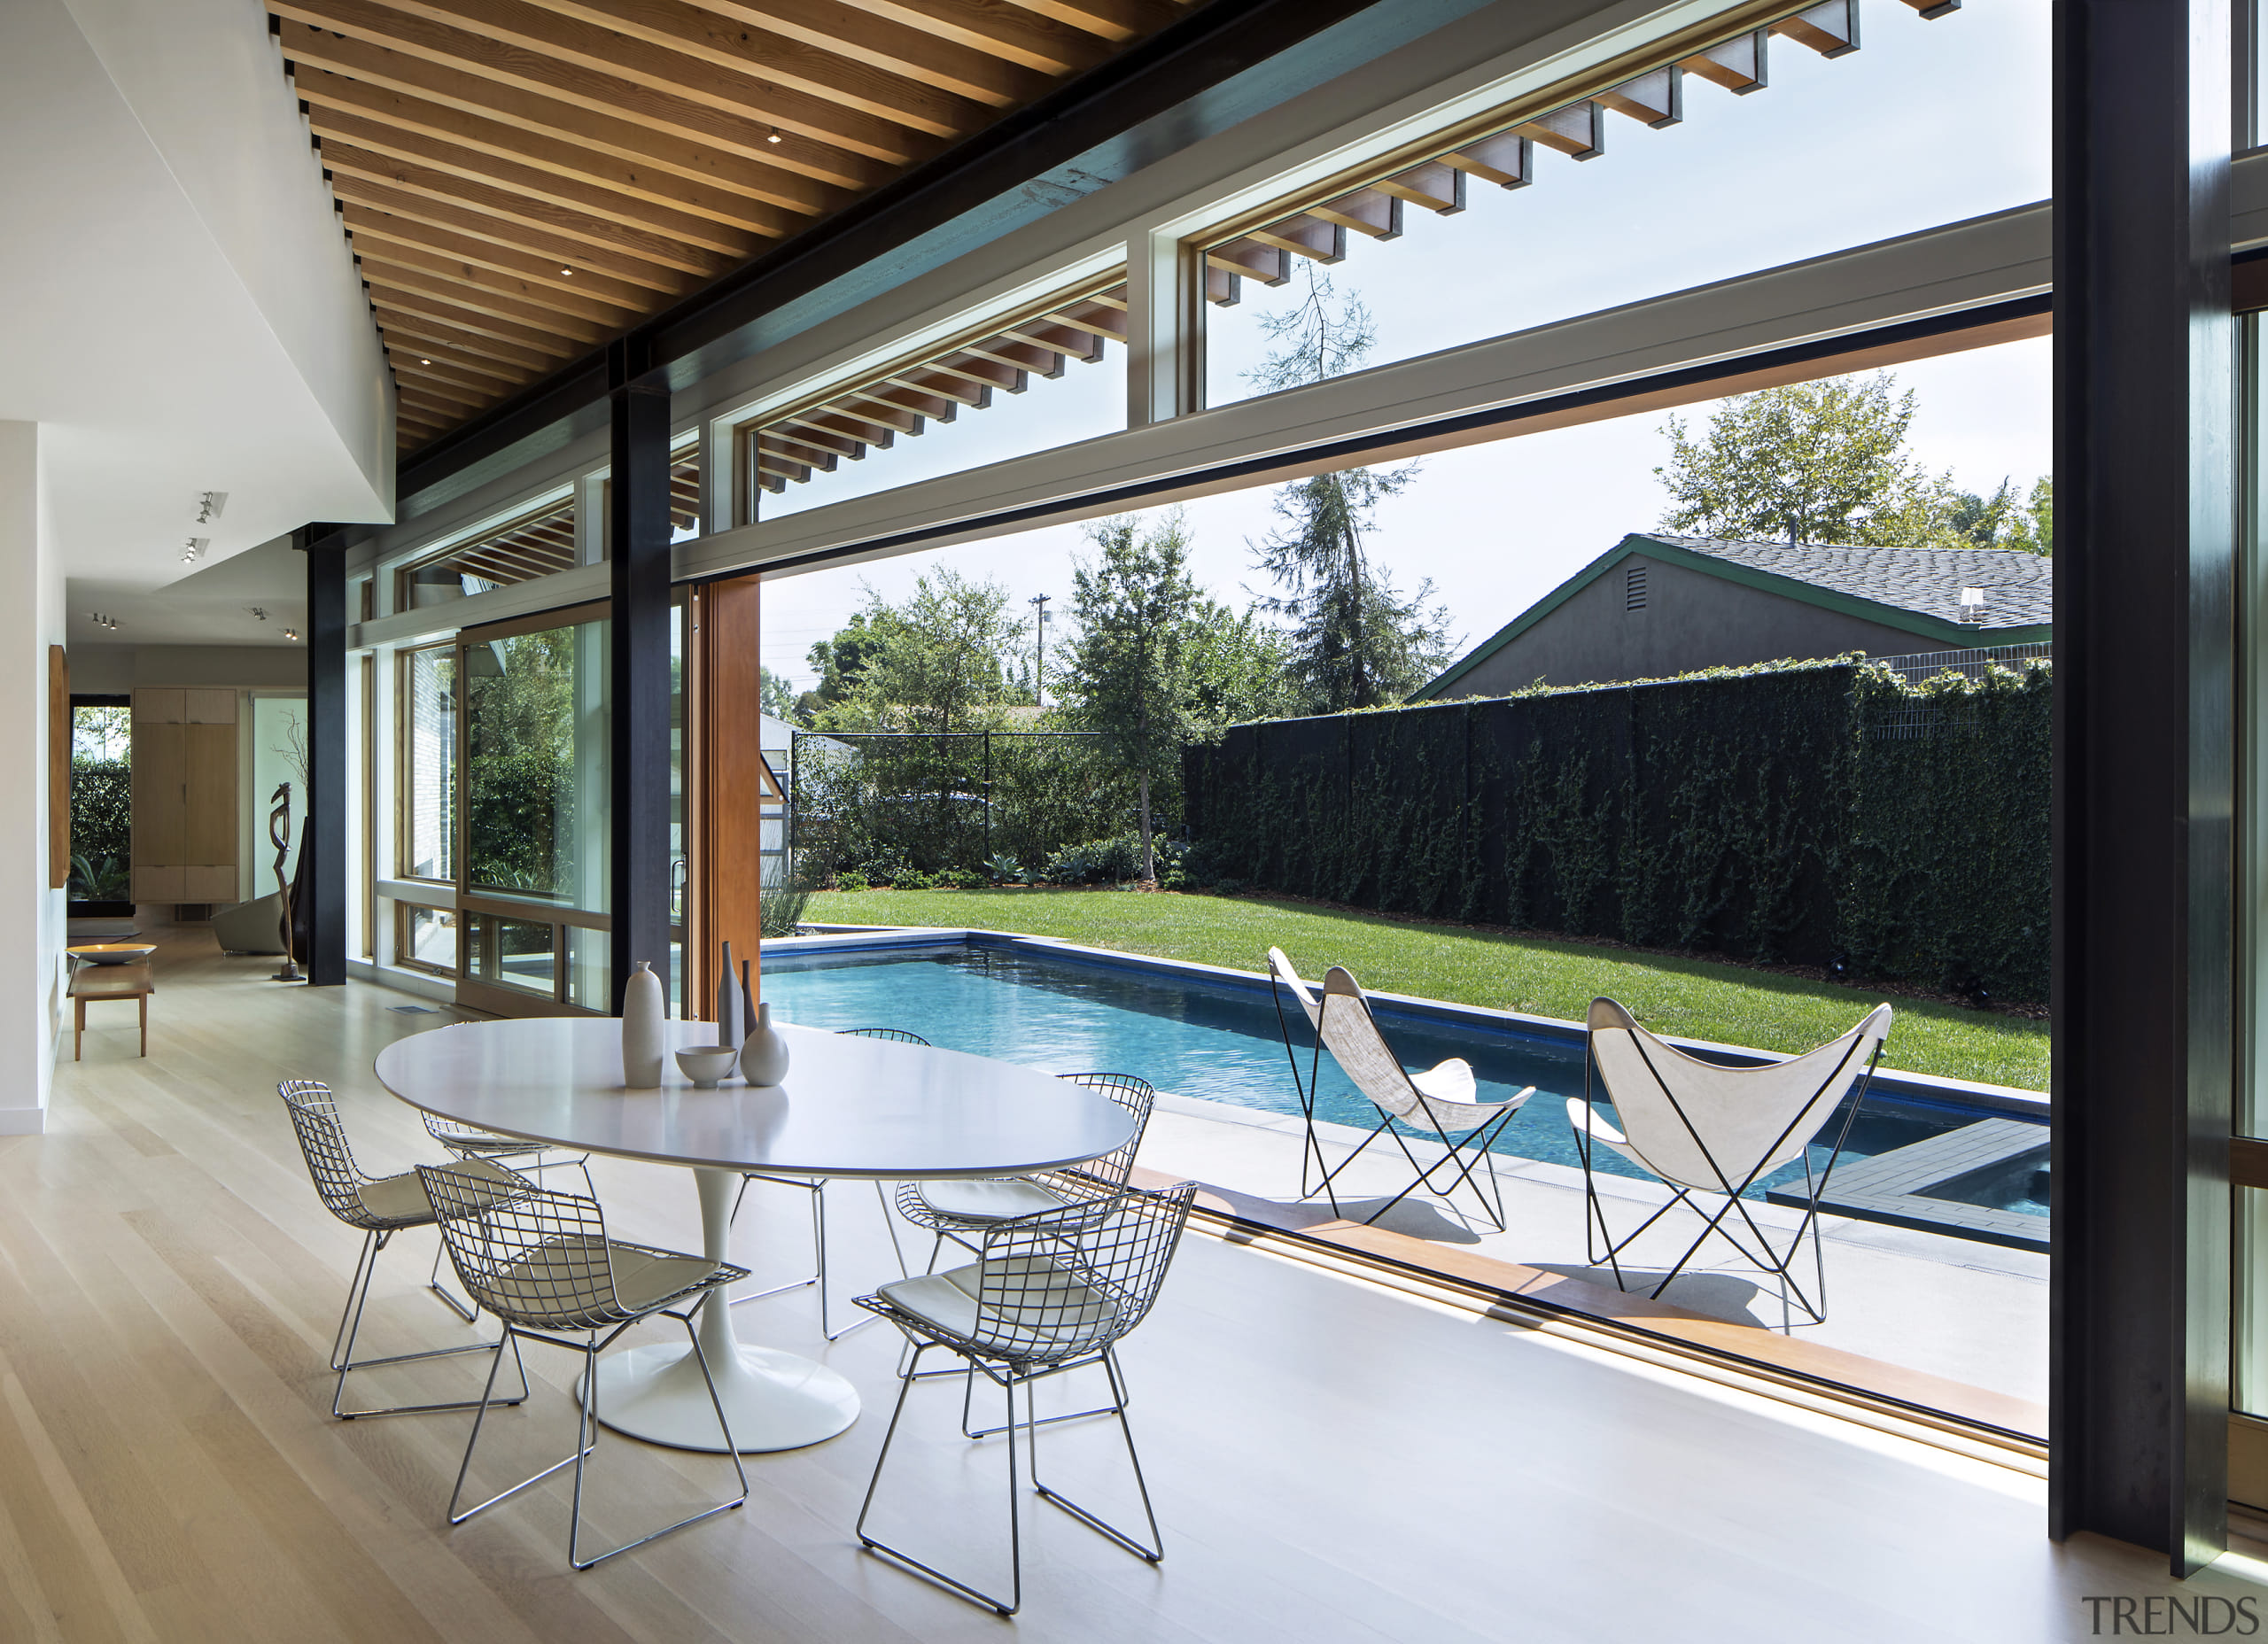 Sliding glass doors open up the dining area architecture, courtyard, furniture, home, house, interior design, shade, swimming pool, Nils Finne, Finne Architects